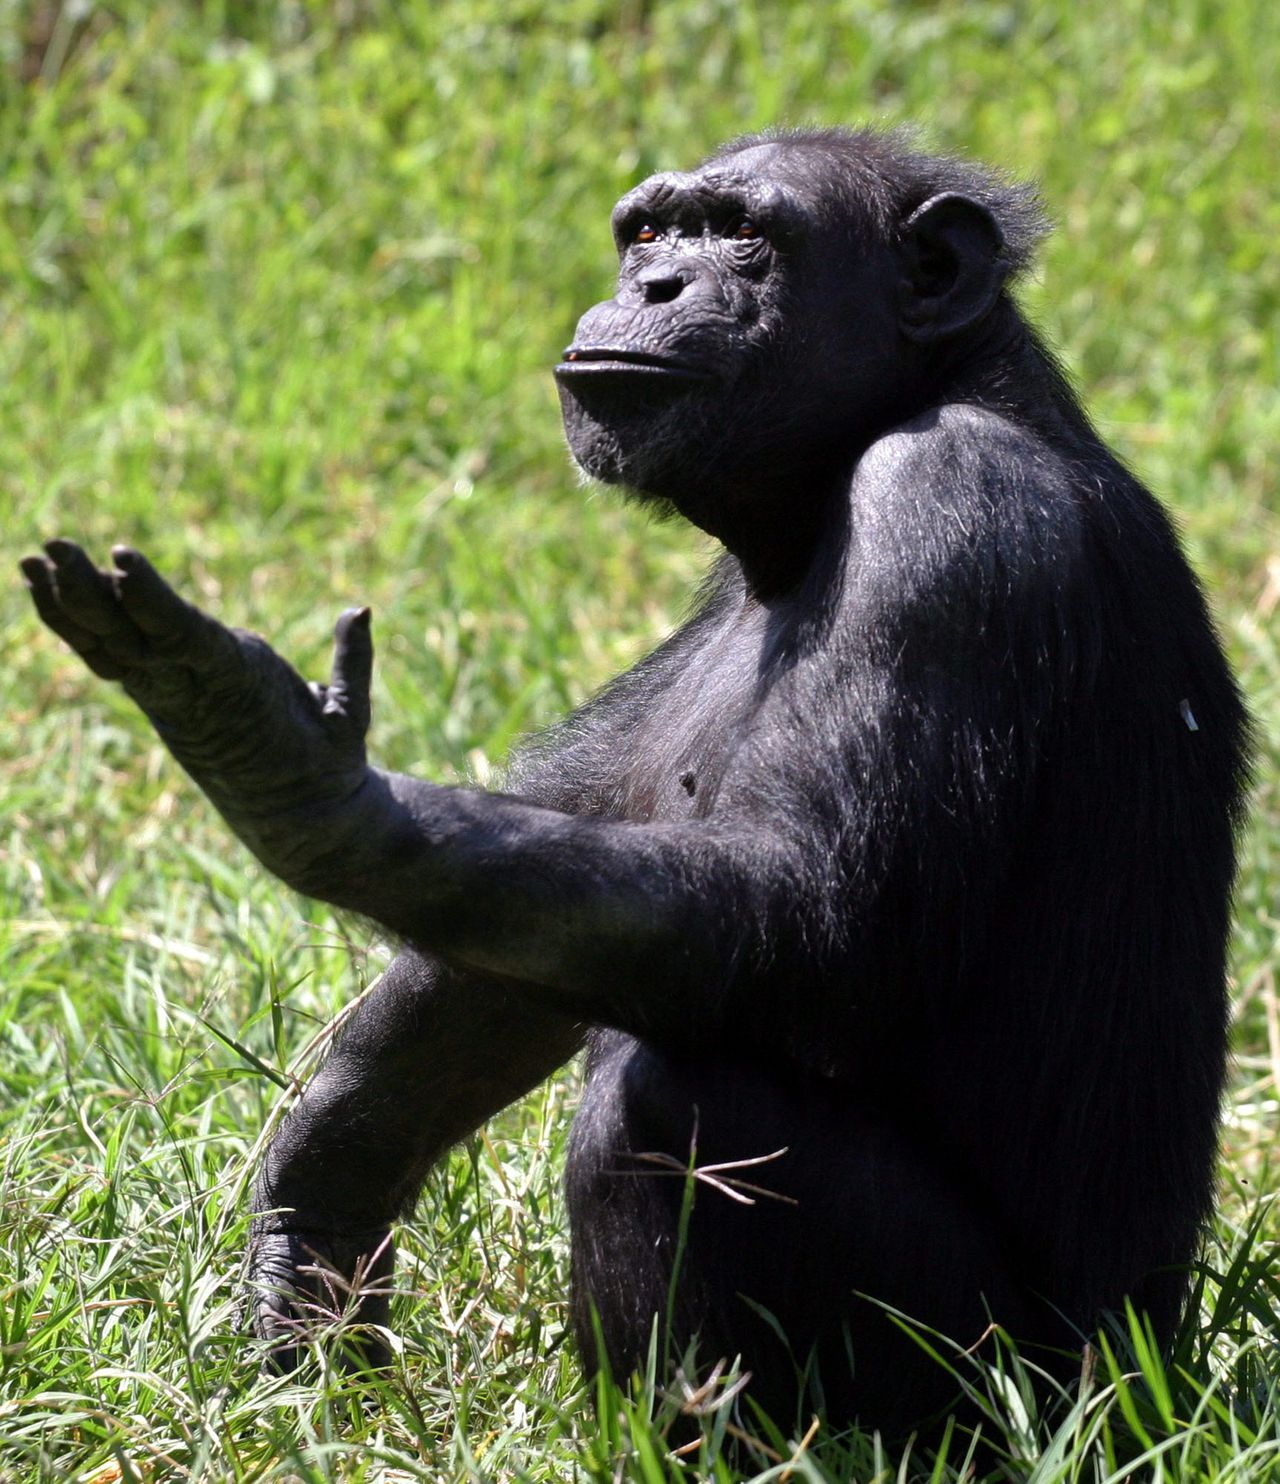 De Zambiaanse chimp Toto vraagt om voedsel. Als chimpansees communiceren is hun linker hersenhelft actief, net als bij mensen. reuters Toto, a 29 year-old chimpanzee, begs for food at Chimfunshi Wildlife Orphanage in Chingola, Zambia April 11, 2005. Toto was rescued from a Circus in Chile in 2003 and moved to Chimfunshi Orphanage in central Zambia, which is a non-profit refuge that cares for a wide variety of sick, wounded or unwanted animals - but the primary residents are more than 100 orphaned chimpanzees. REUTERS/Salim Henry SH/RSS/KI